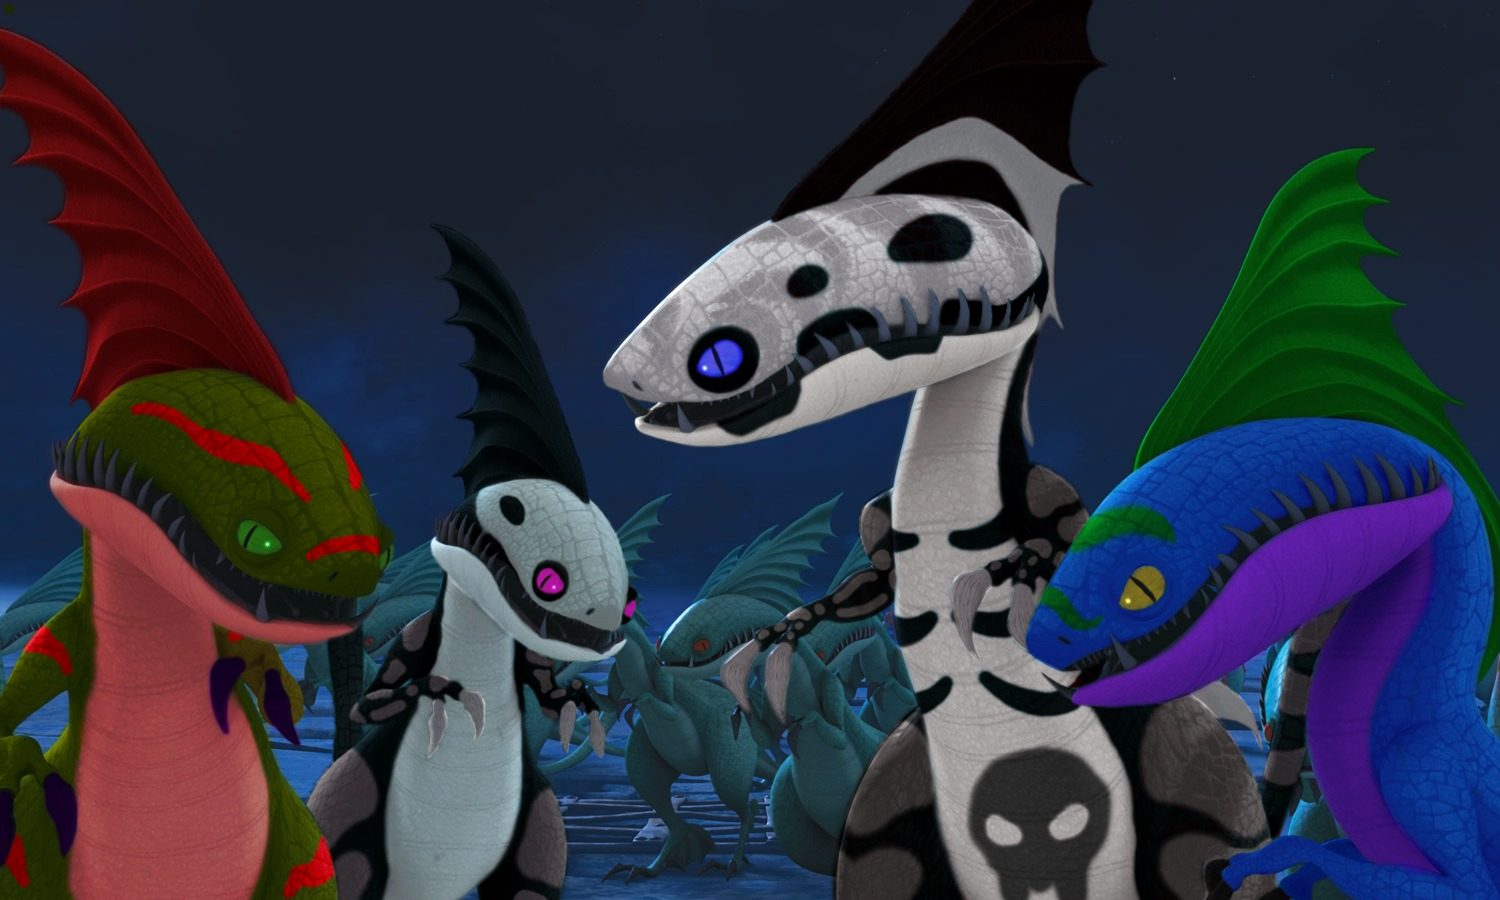 besides 793D4236F262C30A76636A4FF3068 also skrill dragon 01 moreover  as well full1 moreover SODJ boneknapper furthermore 02 Skrill moreover Astrid Stormfly Dreamworks Dragons Riders of Berk wallpaper 1 further 21566f0d 5591 4997 a277 f1adbecb4a2f zpsb26e758b further  furthermore midas by breathofnightmare d8xm4k7. on dragons defenders of berk scauldron coloring pages